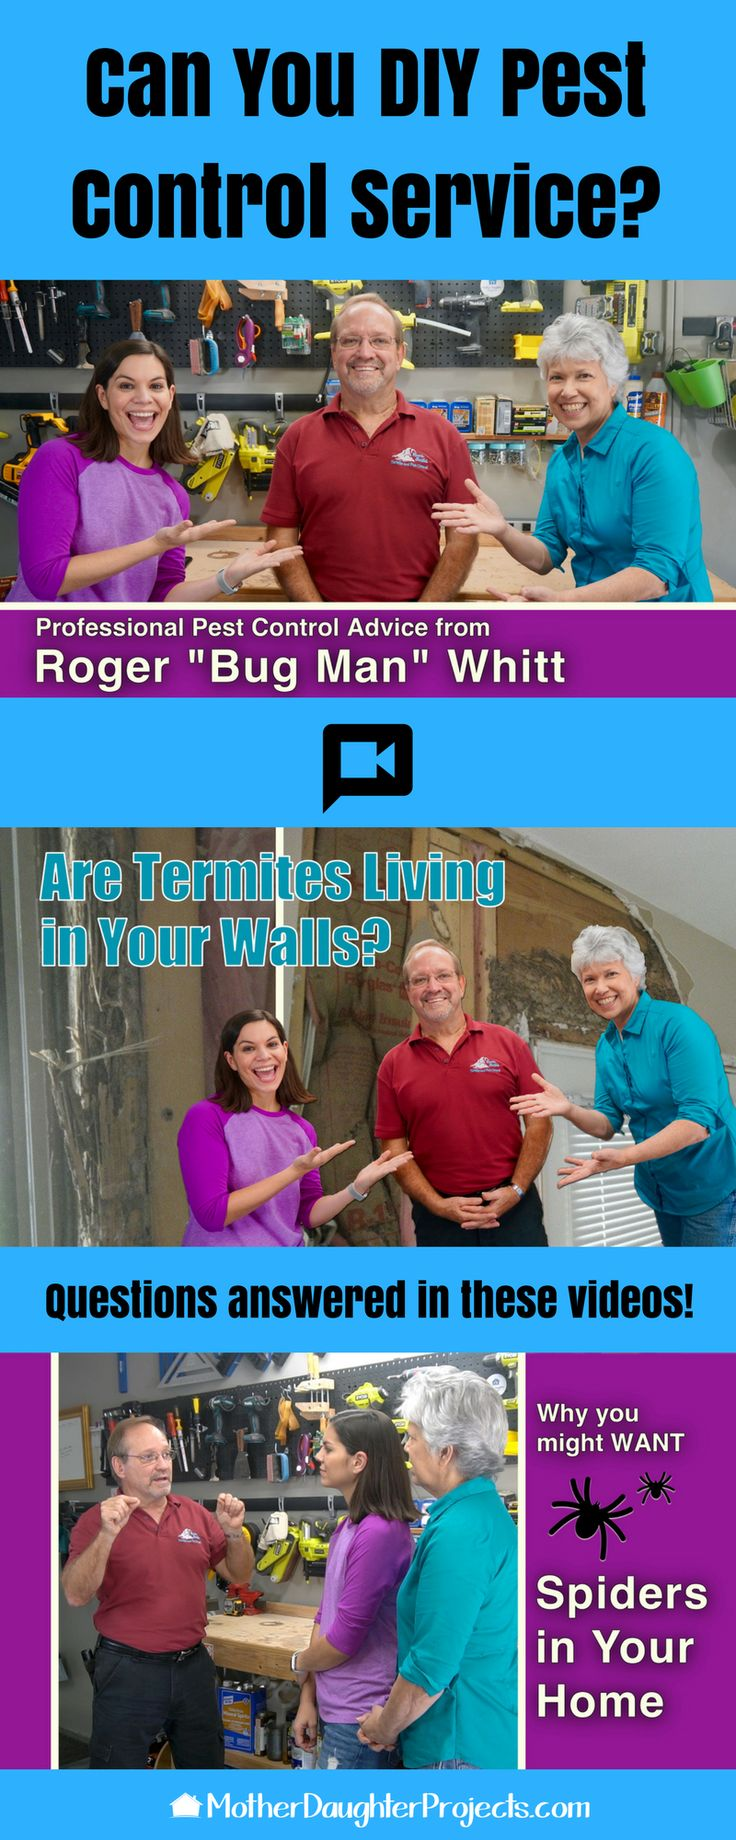 Learn all about pest control service and how to DIY your own  bug service in these videos!